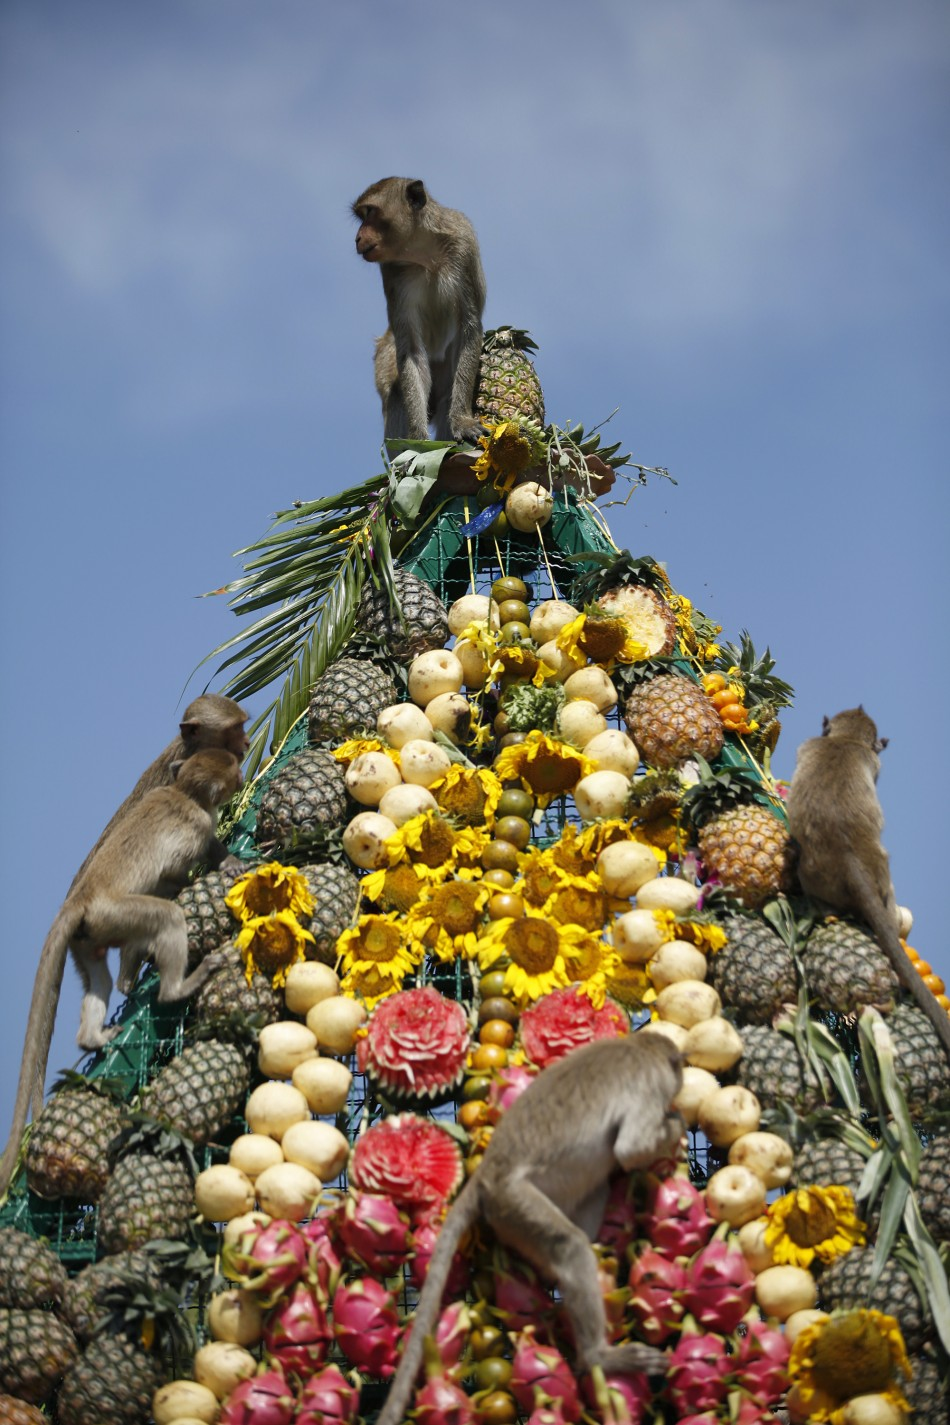 The Lopburi Monkey Festival